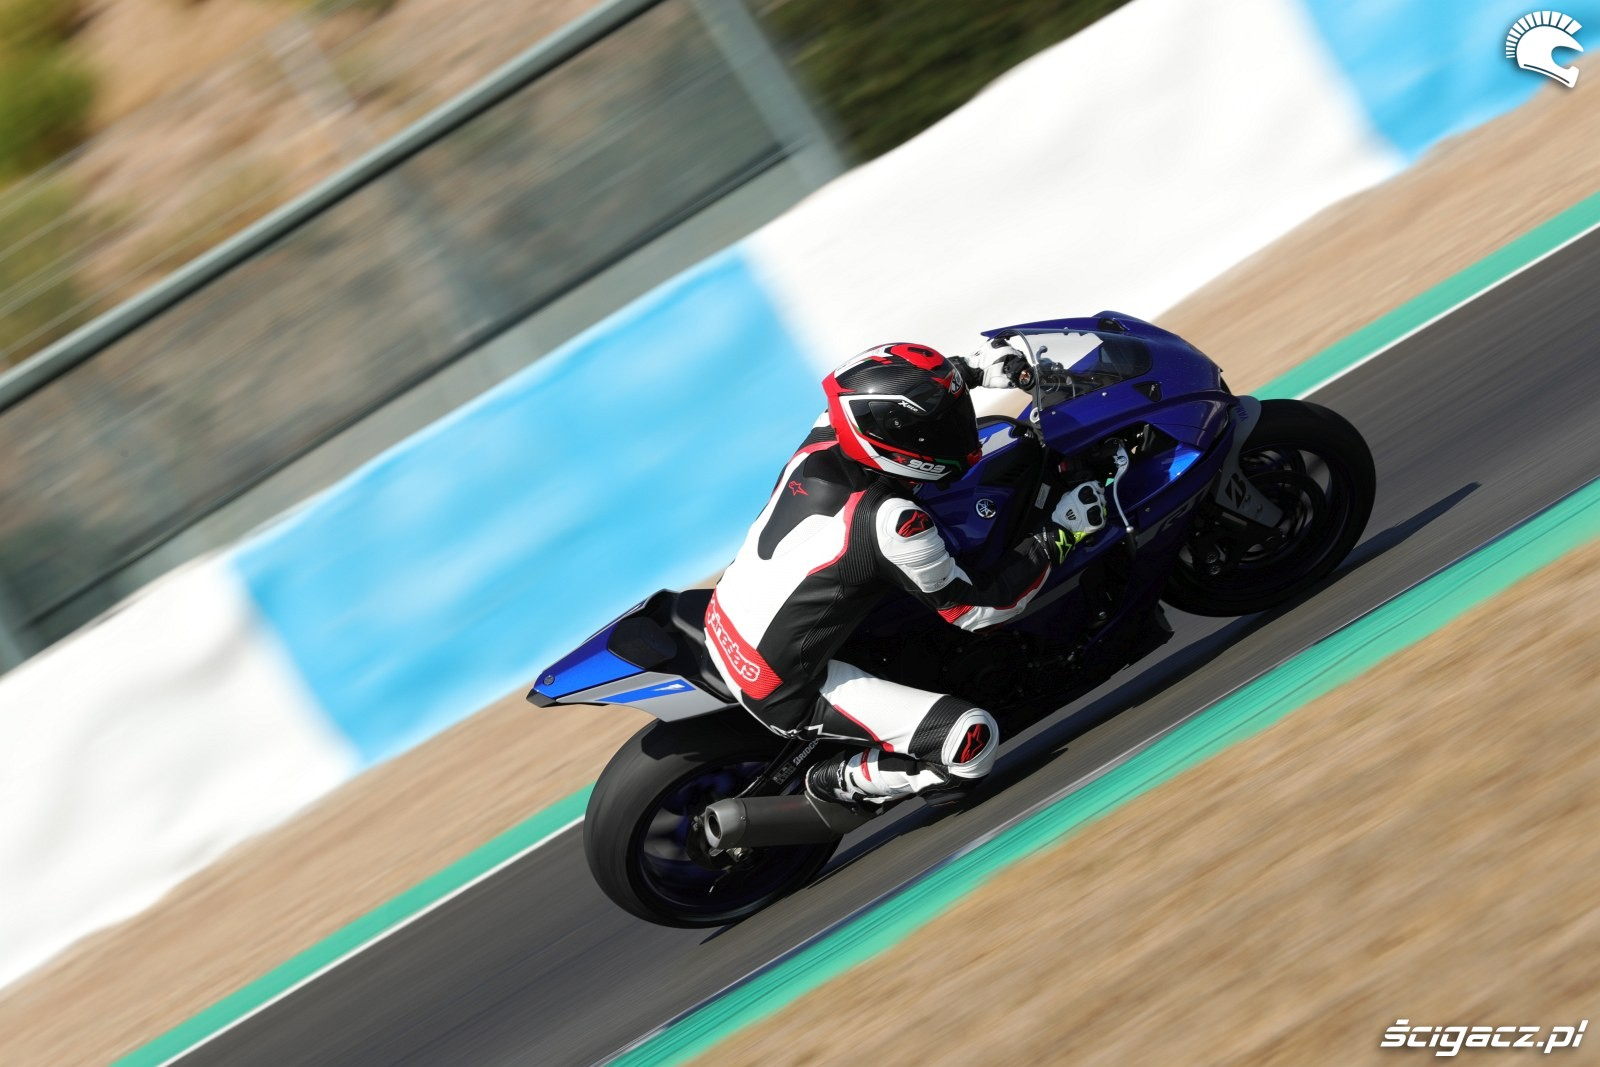 011 r1m 2020 jerez barry